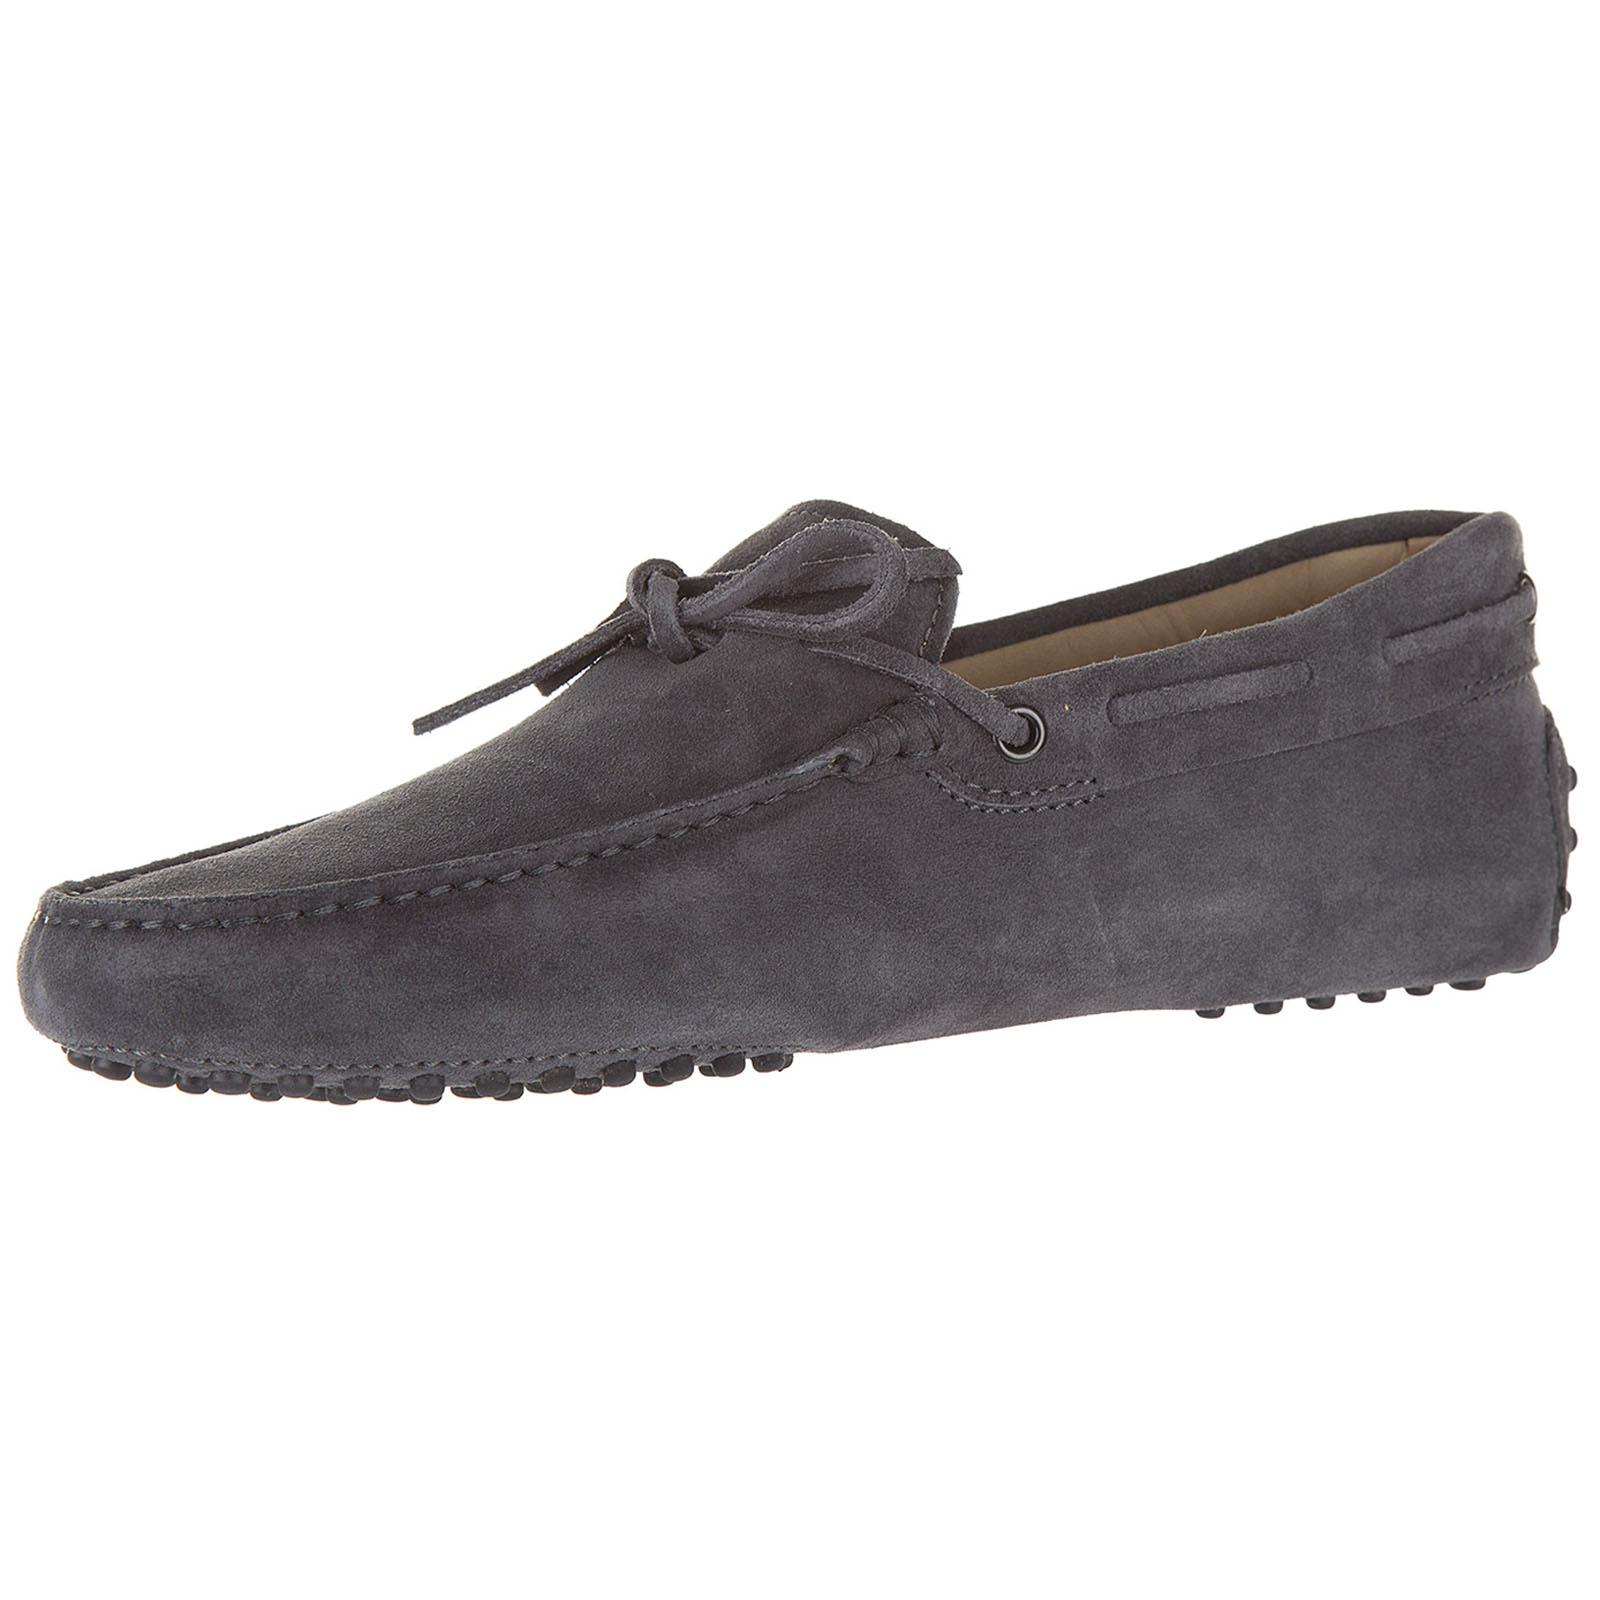 Men's suede loafers moccasins laccetto new gommini 122